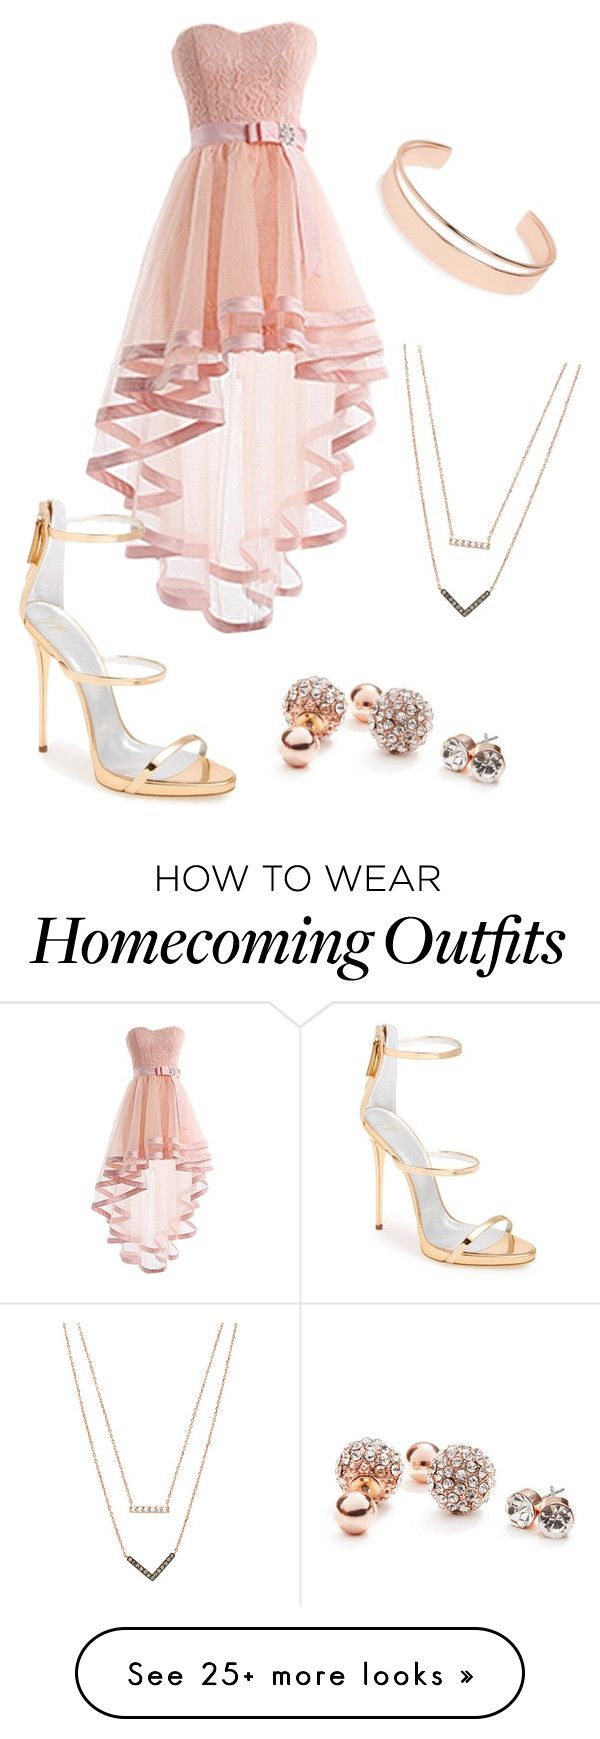 """Untitled #1621"" by lover99 on Polyvore featuring Giuseppe Zanotti, GUESS, Michael Kors and Leith"